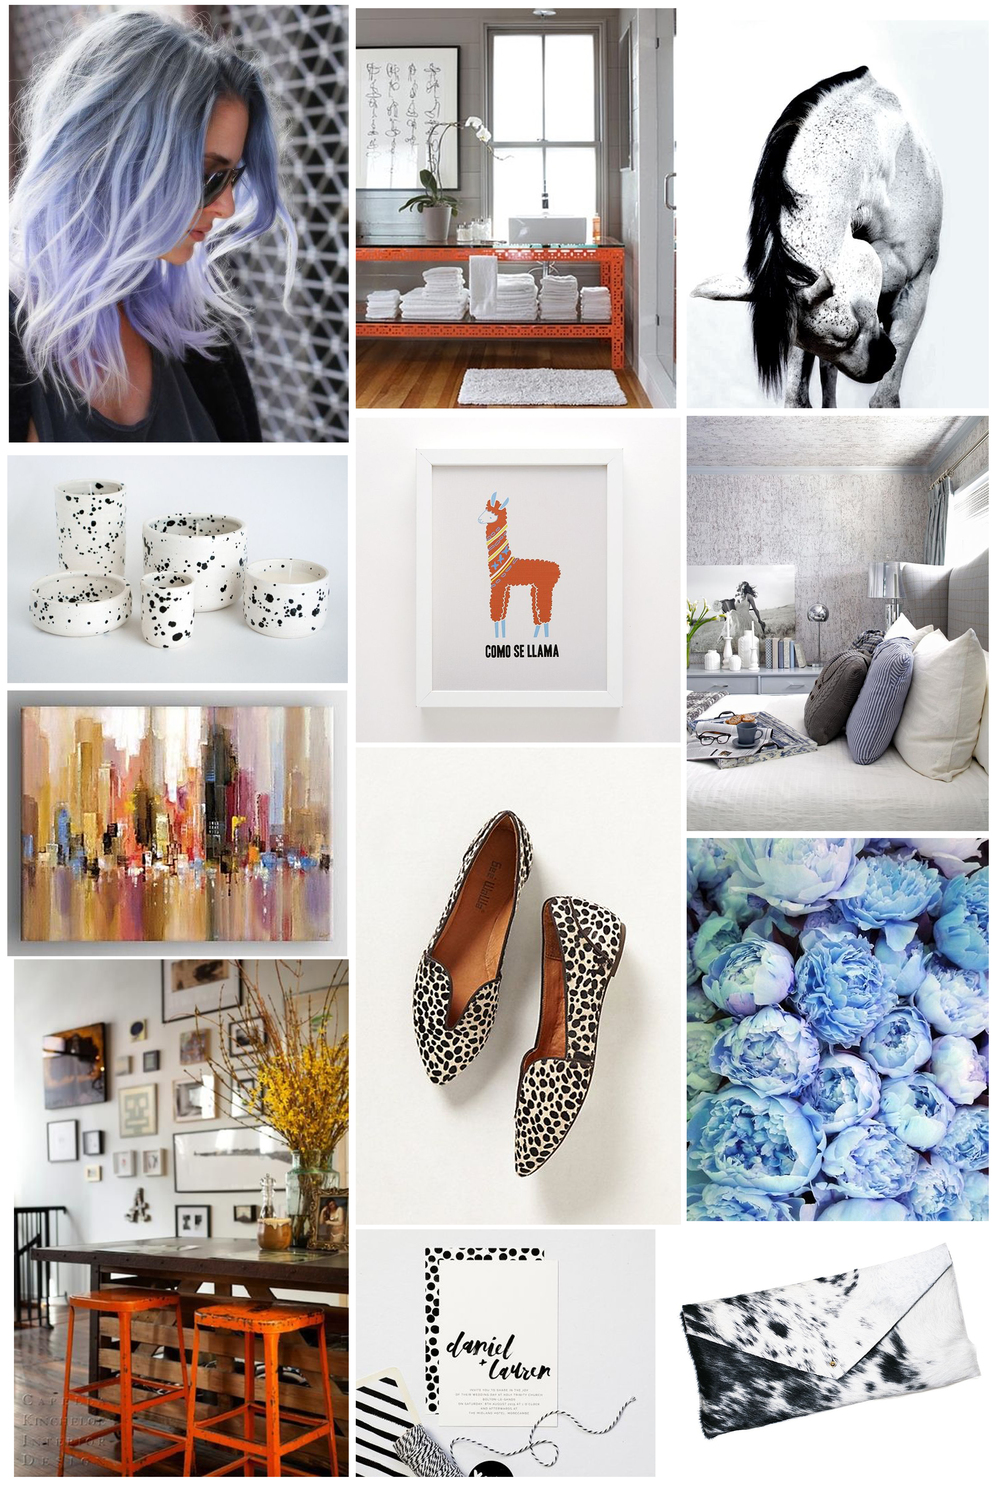 WEEKLY INSPIRATION WITH MONDAY MOOD BOARD 33 | THE PAPER CURATOR